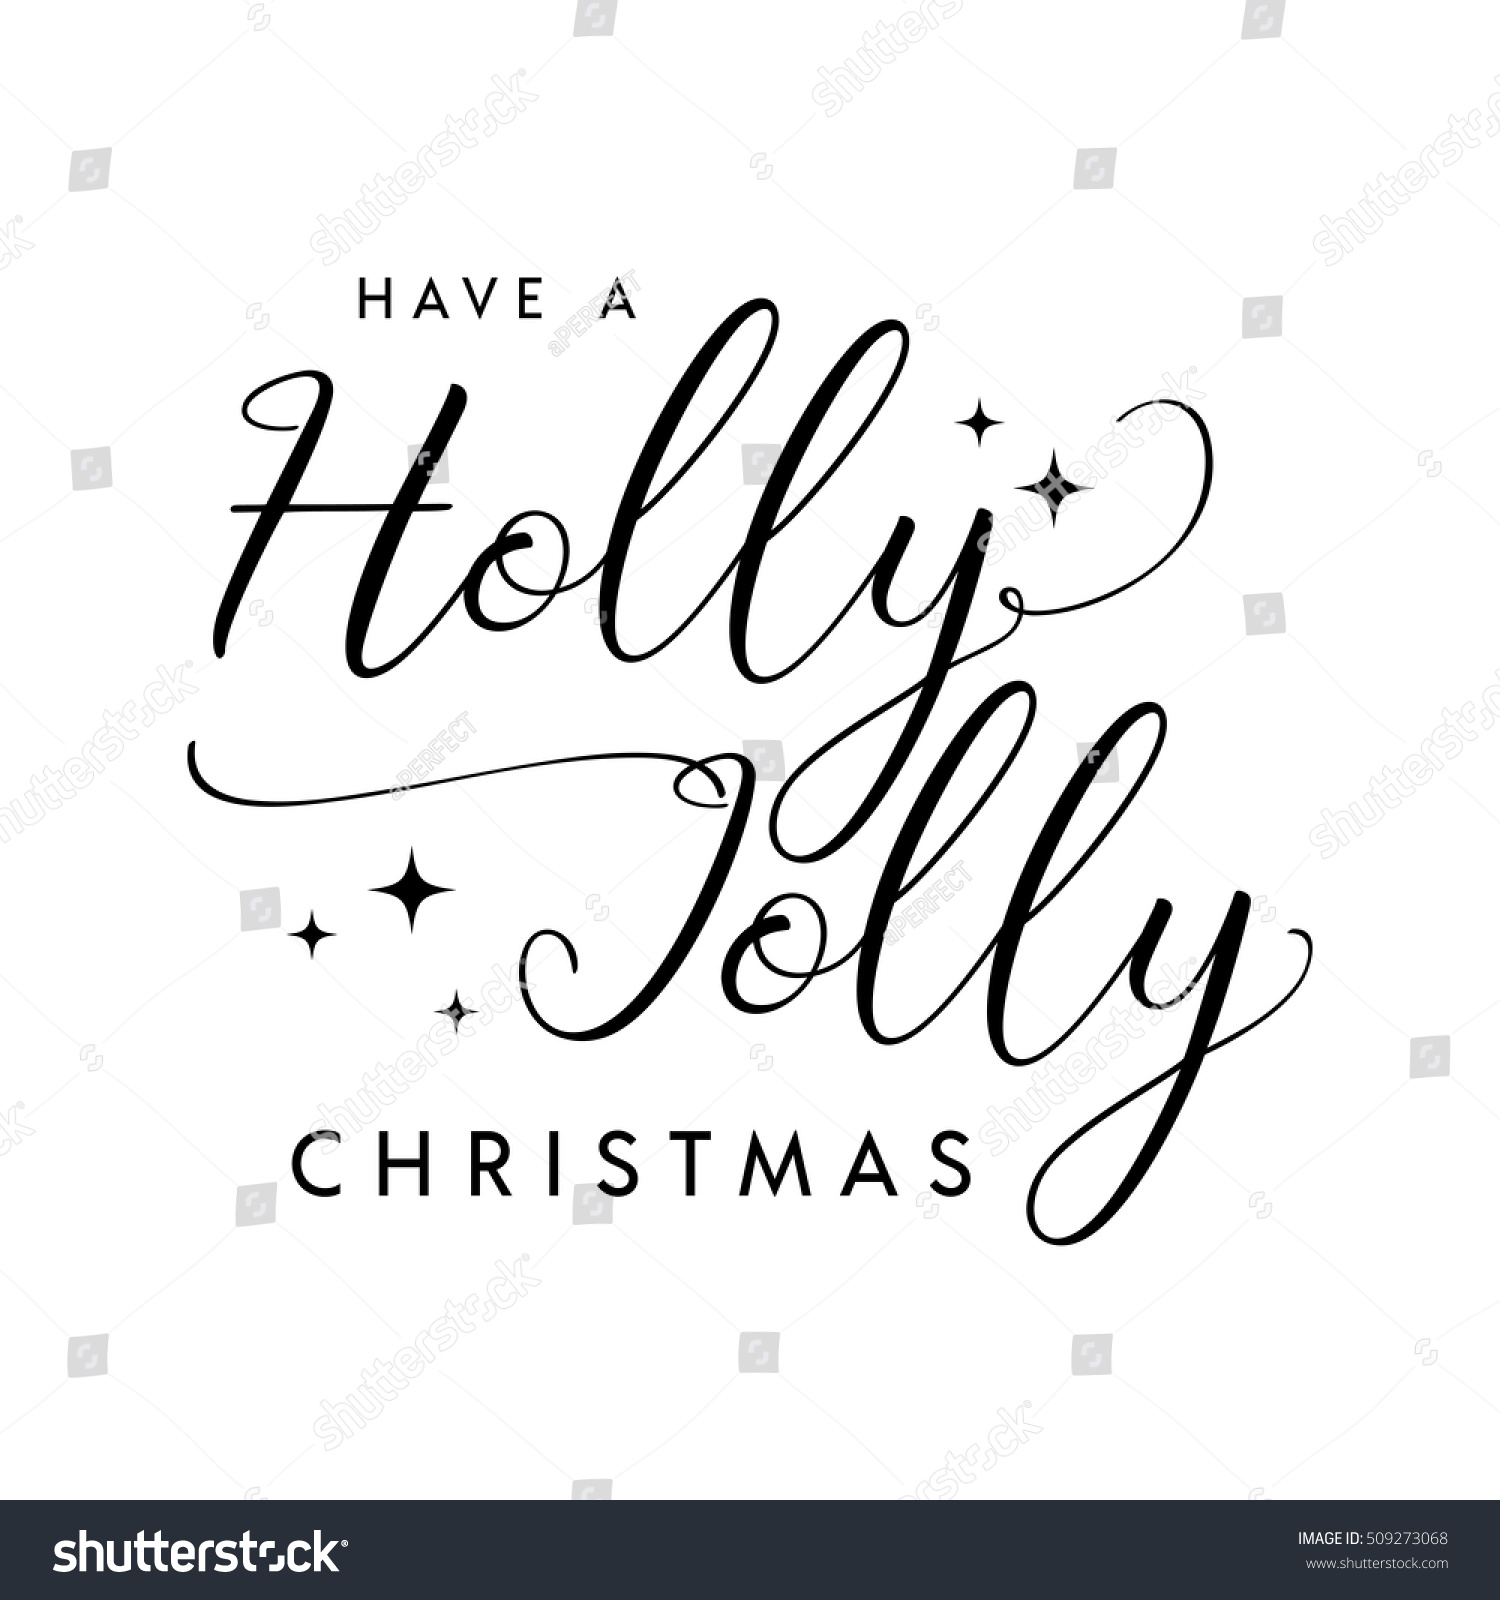 Have holly jolly christmas modern calligraphy stock vector